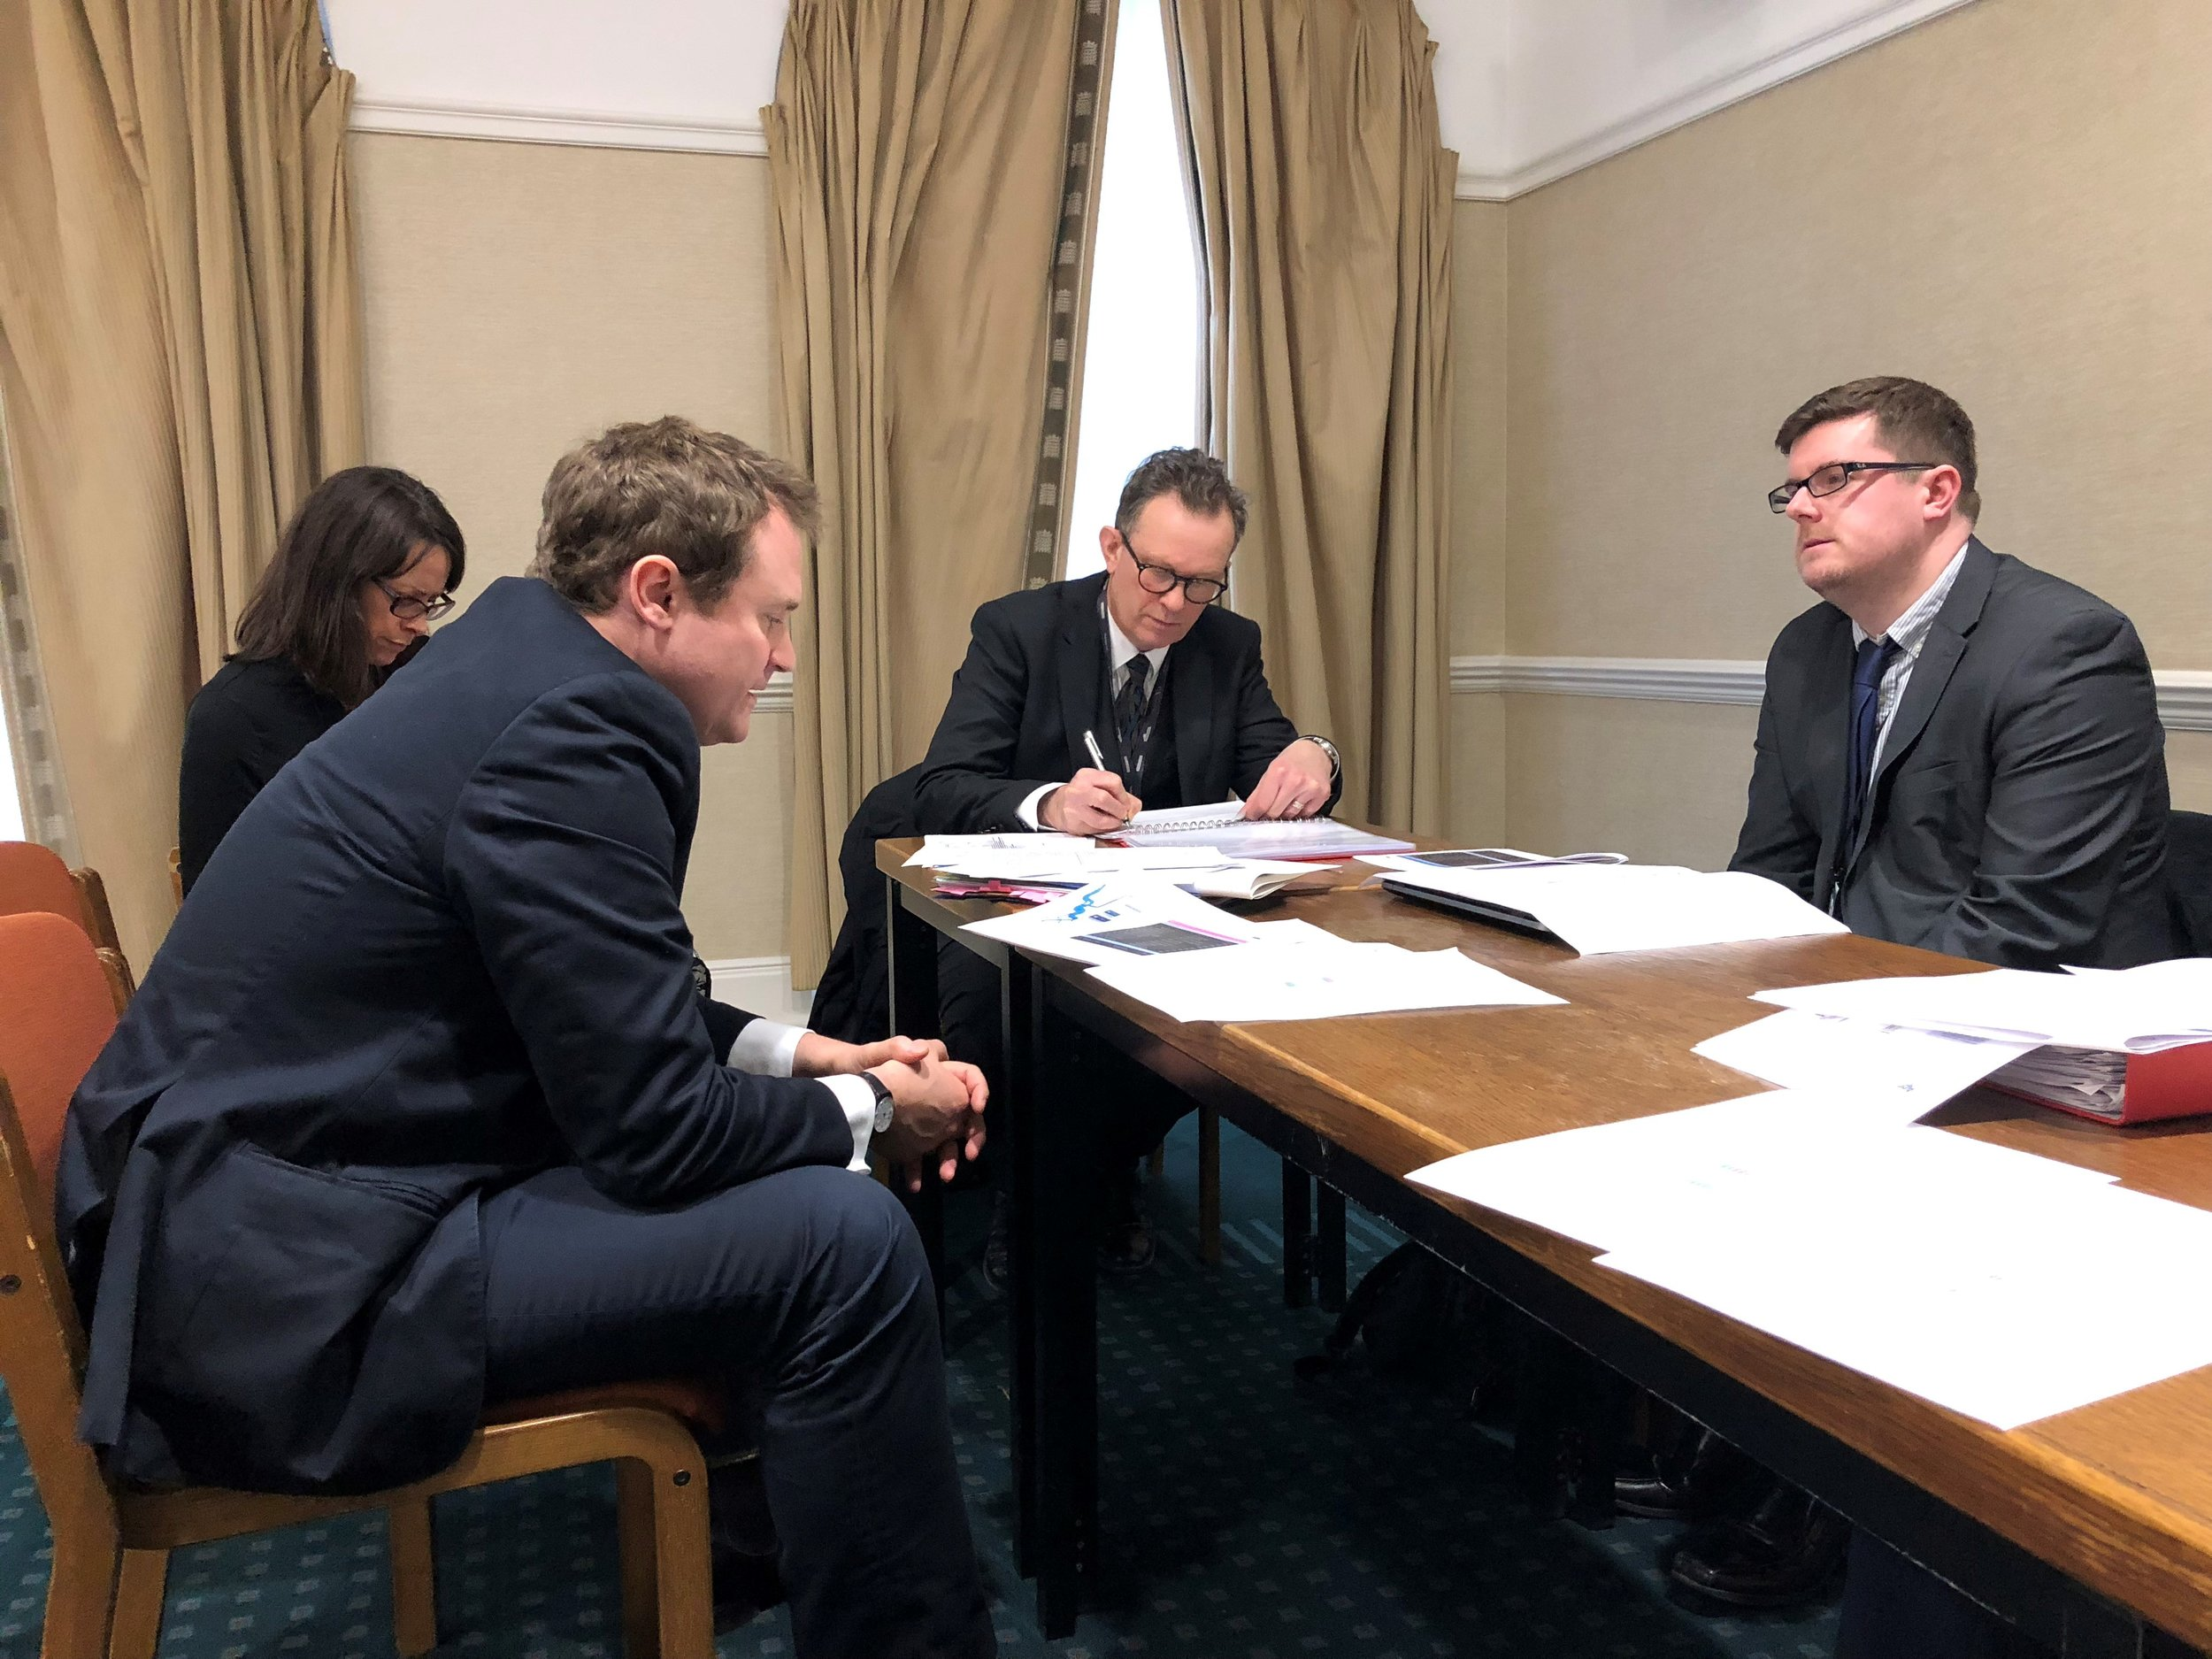 Following GTR's decision to postpone the introduction of its Thameslink service on the Maidstone East line for a year until December 2019, which would have provided an excellent service from West Malling and Borough Green to the City of London, I met with their management team to discuss their reasons.  It was a useful, if not wholly positive meeting. In short GTR are keen to phase in the introduction of their Thameslink services rather than introduce them all at once. Because they need to preserve existing services on their network, they say this is why we are in the situation where our service has been delayed.  I've left GTR in no uncertain terms that they need to do all they can to bring the service forward, if possible. They are contractually obliged to implement this service so it will happen. I hope that, should the introduction of the first round of services go well, our date can be moved forward as December 2019 is far too long a wait for a service which was promised years ago.